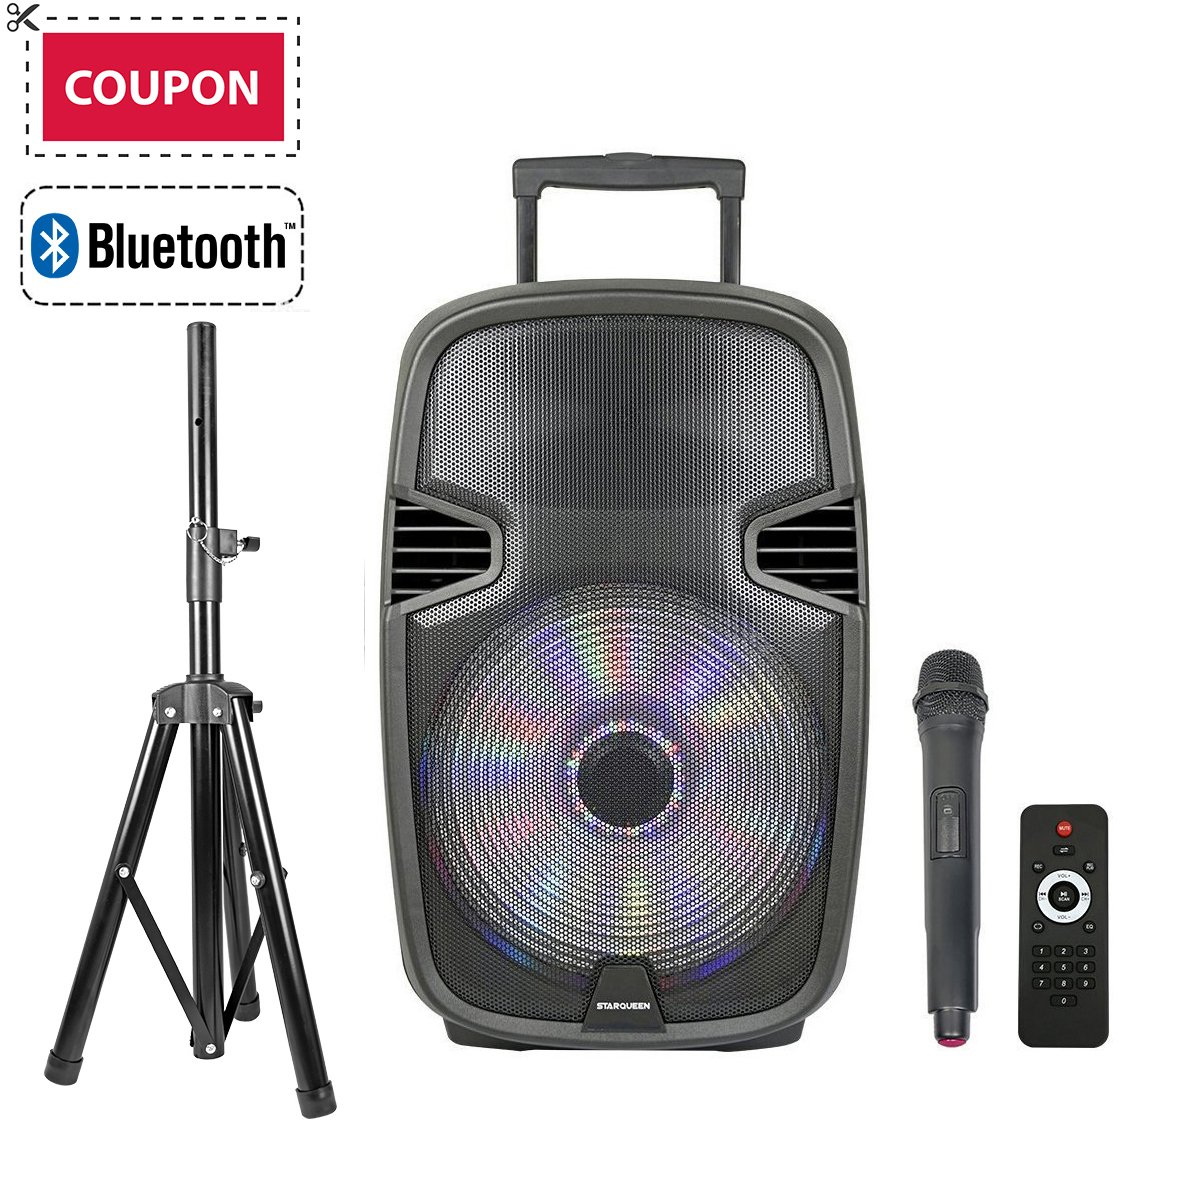 STARQUEEN 15'' Portable Outdoor Bluetooth PA Speaker System, with Wireless Microphone and Party Lights for Karaoke, USB/SD/FM Radio Function, Mic/Guitar Jack, Tripod Stand Included - Black